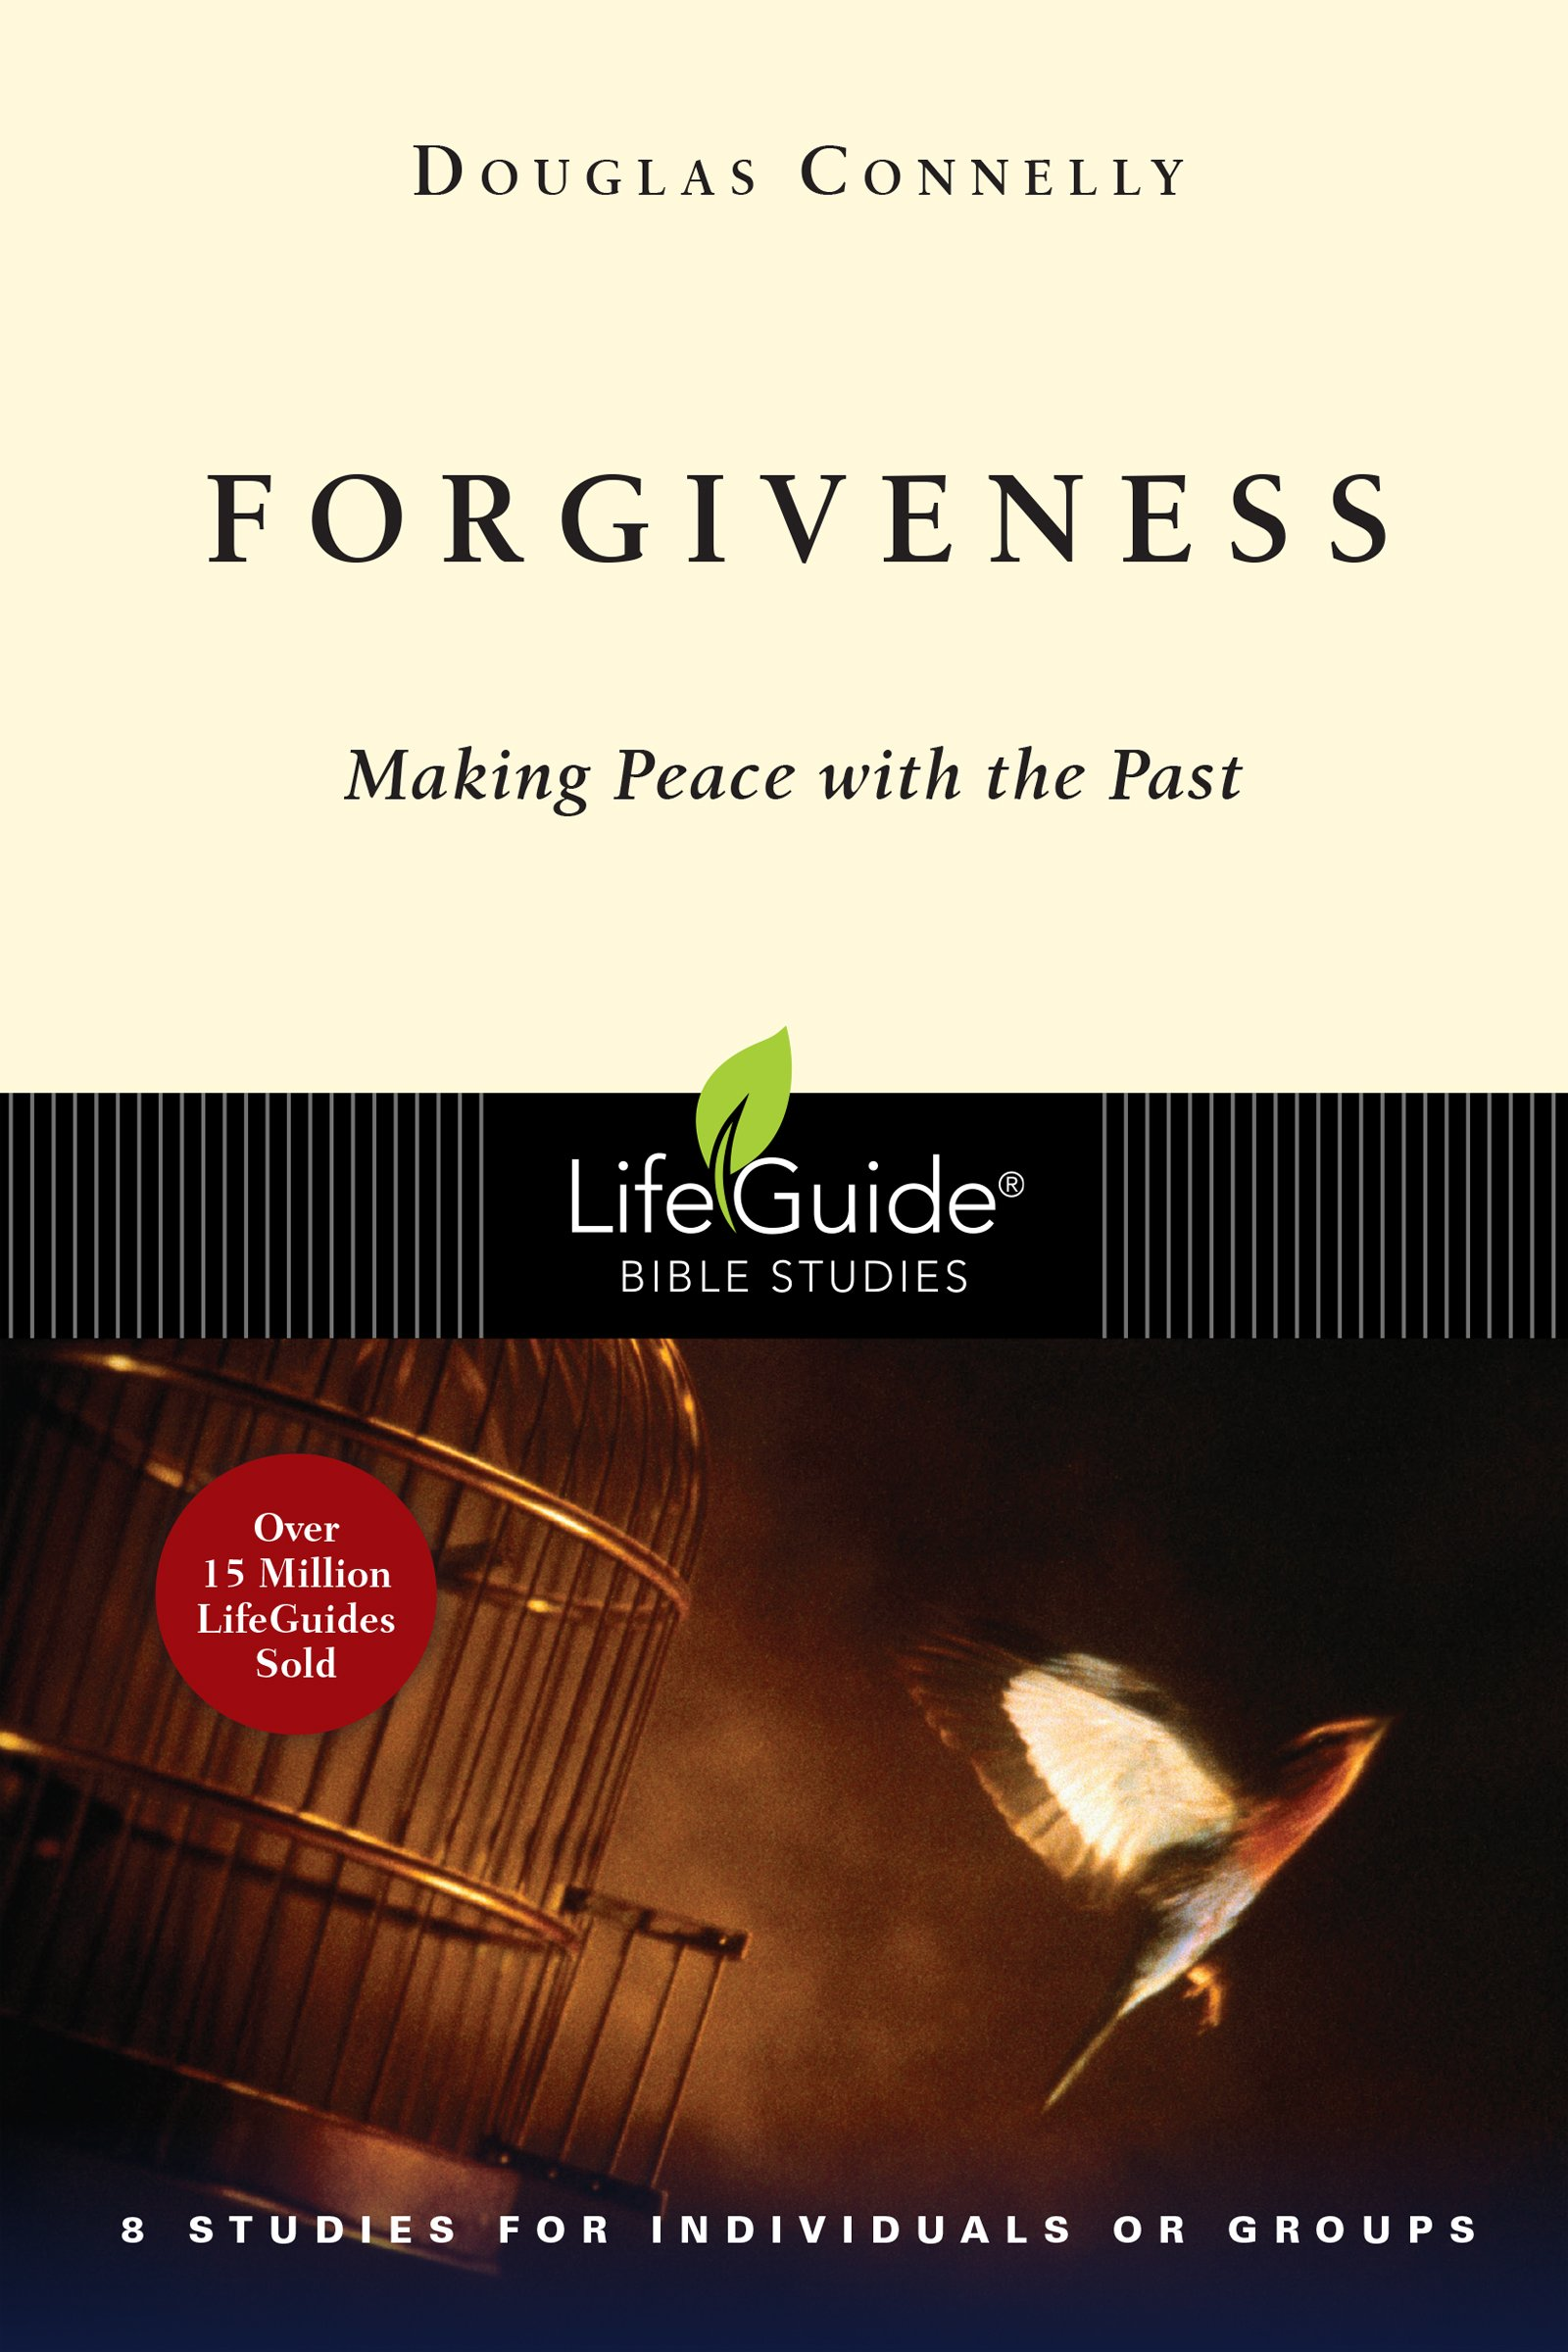 Download Forgiveness: Making Peace with the Past (Lifeguide Bible Studies) ebook